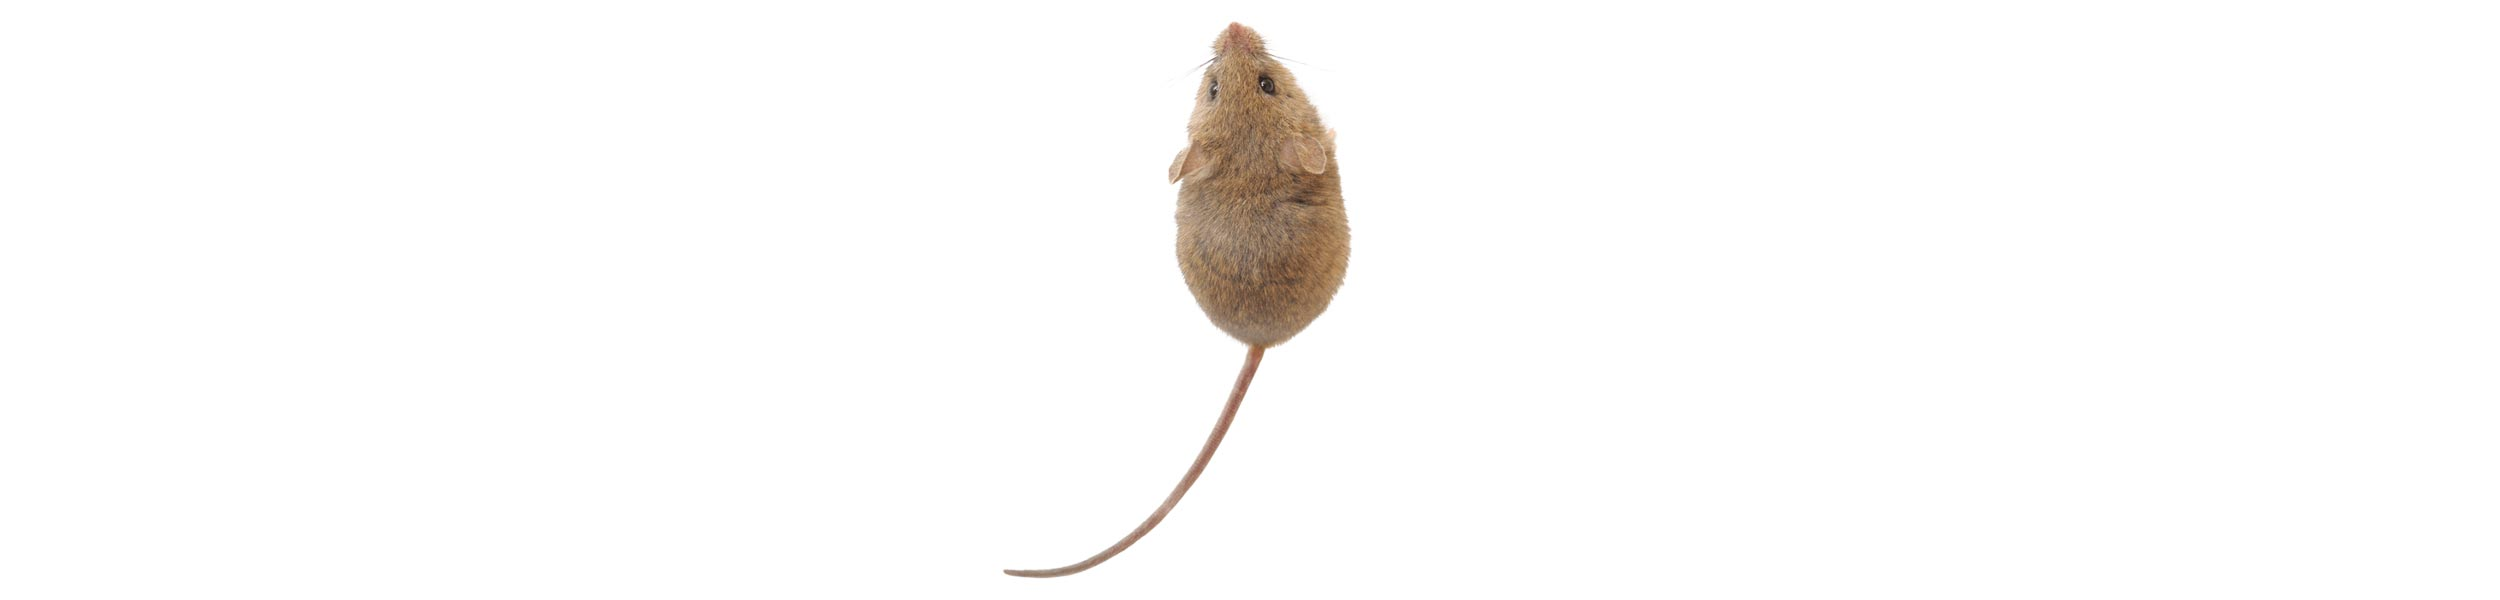 ACE Exterminating-Pest-Control-Rodents-Mouse-Rat-Header